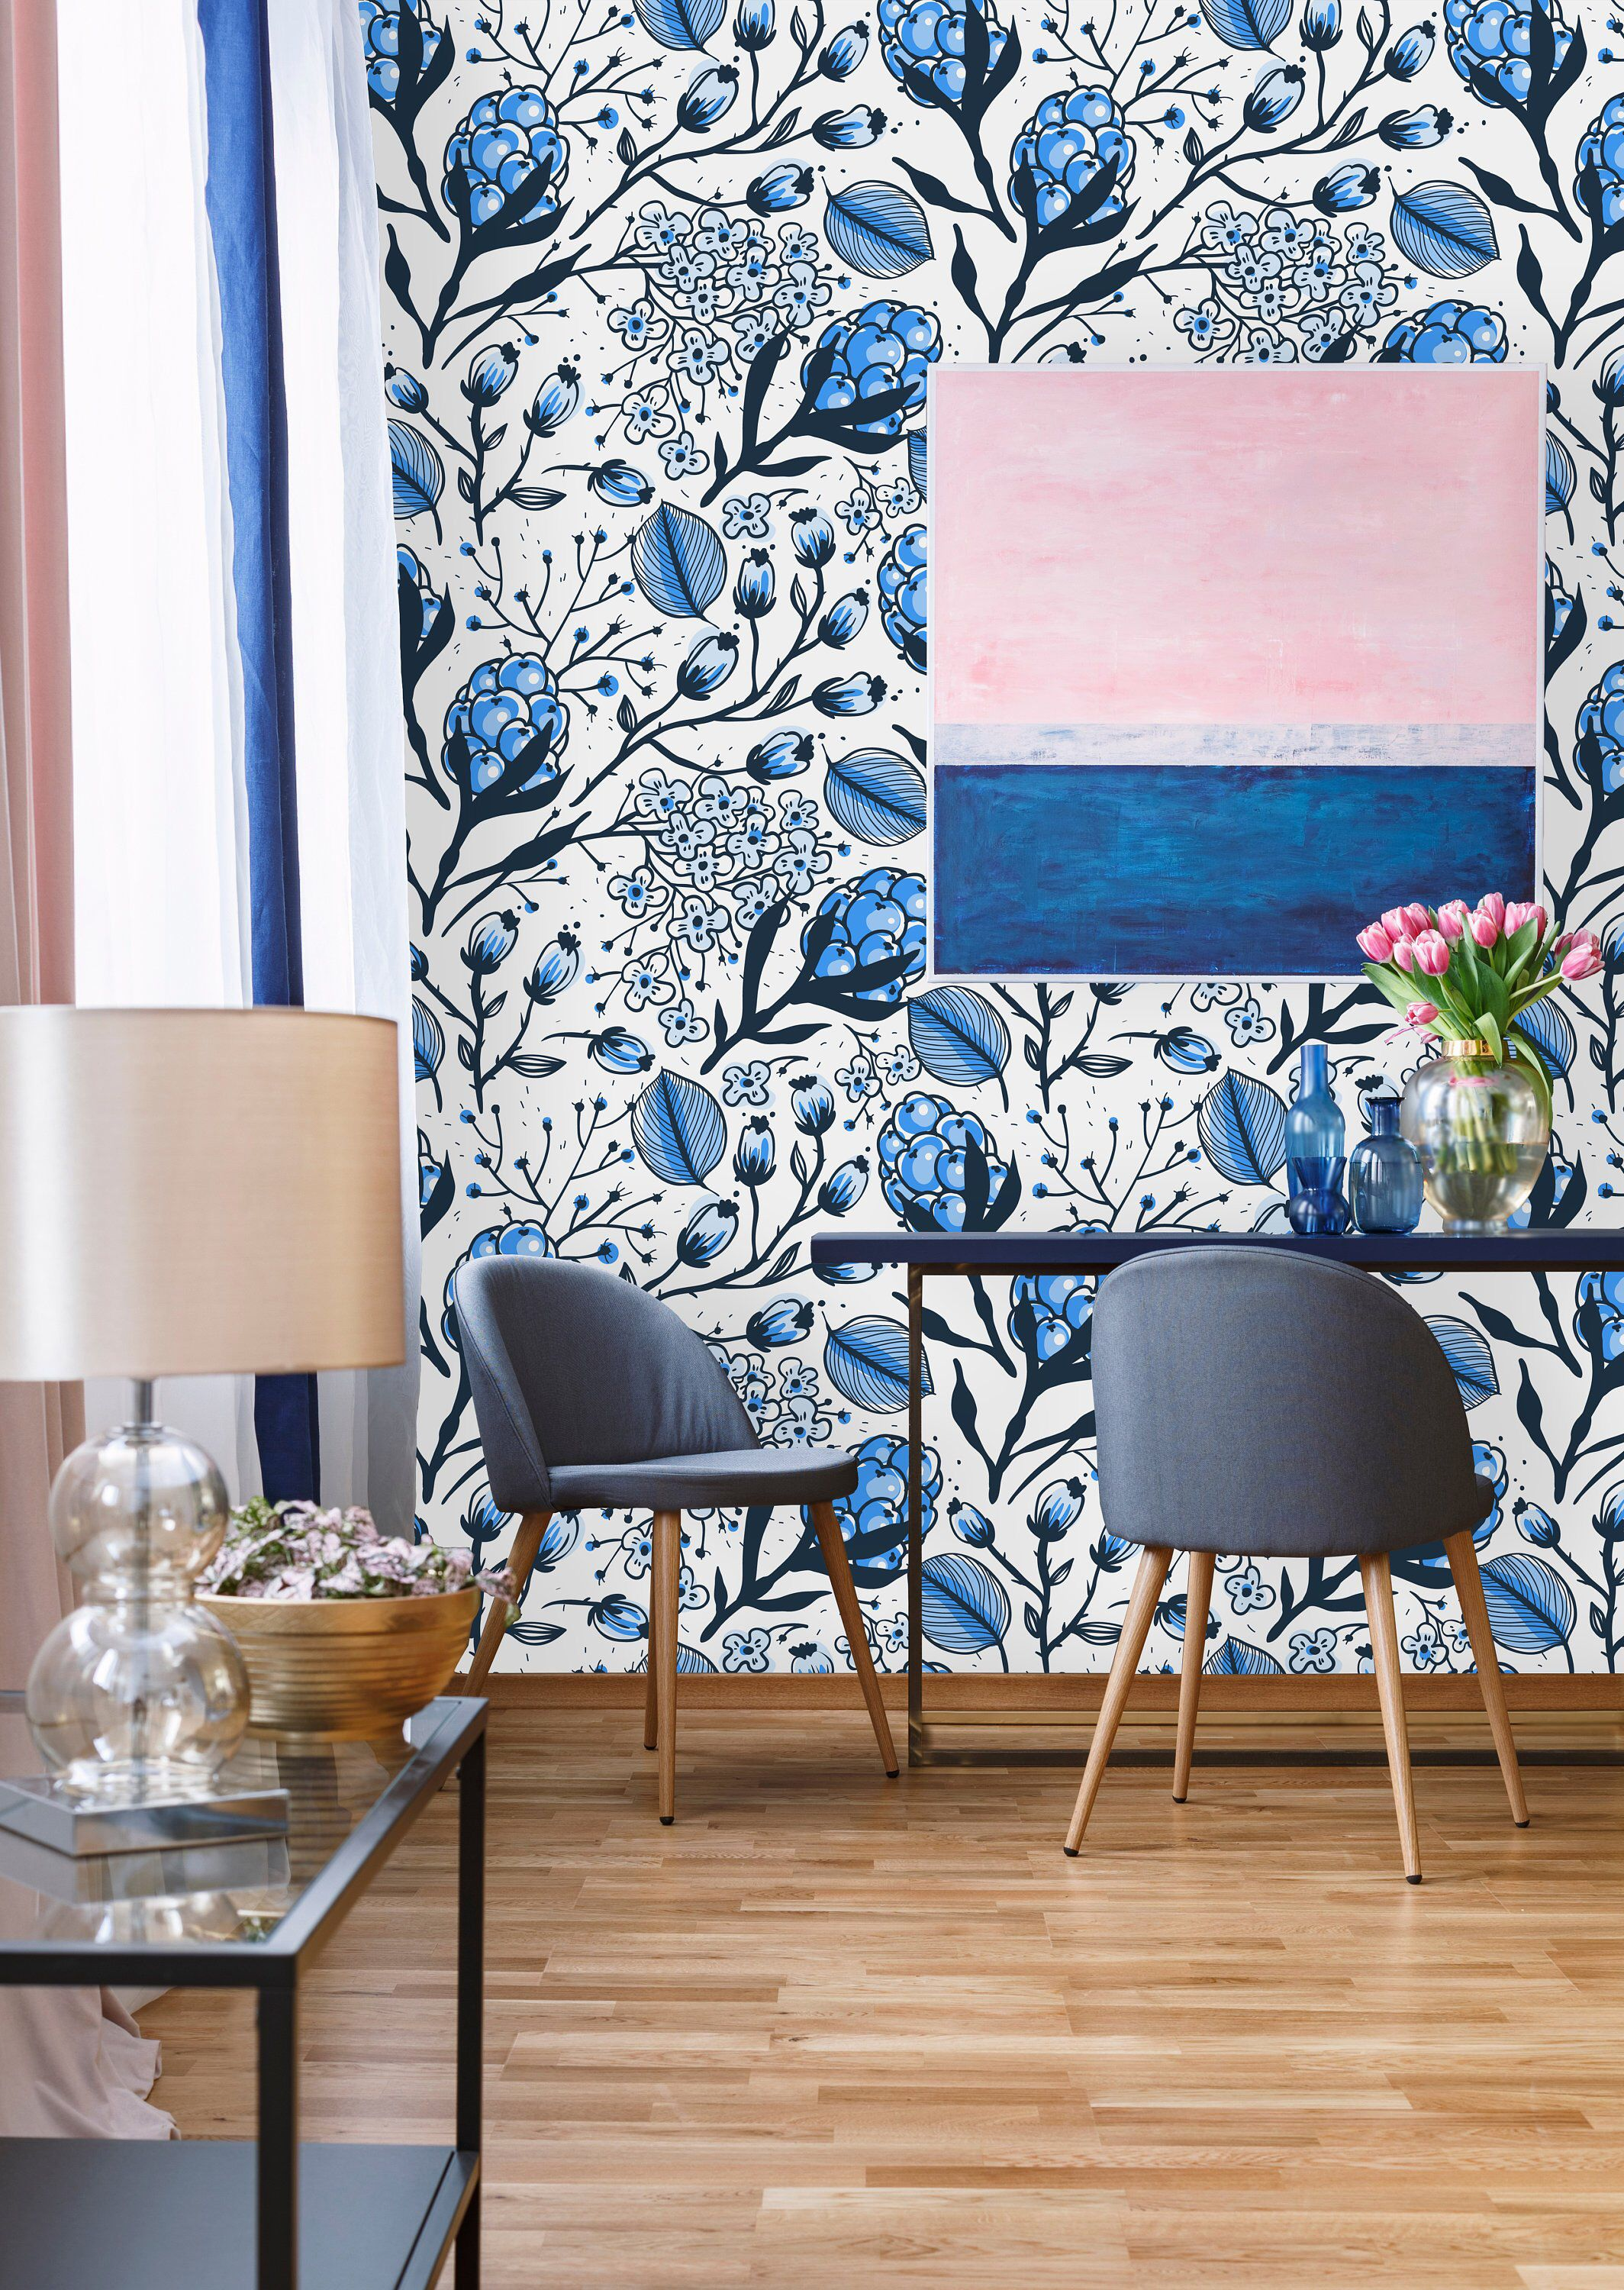 Removable Wallpaper Peel And Stick Wallpaper Self Adhesive Etsy Dining Room Wallpaper Blue Wallpaper Living Room Removable Wallpaper